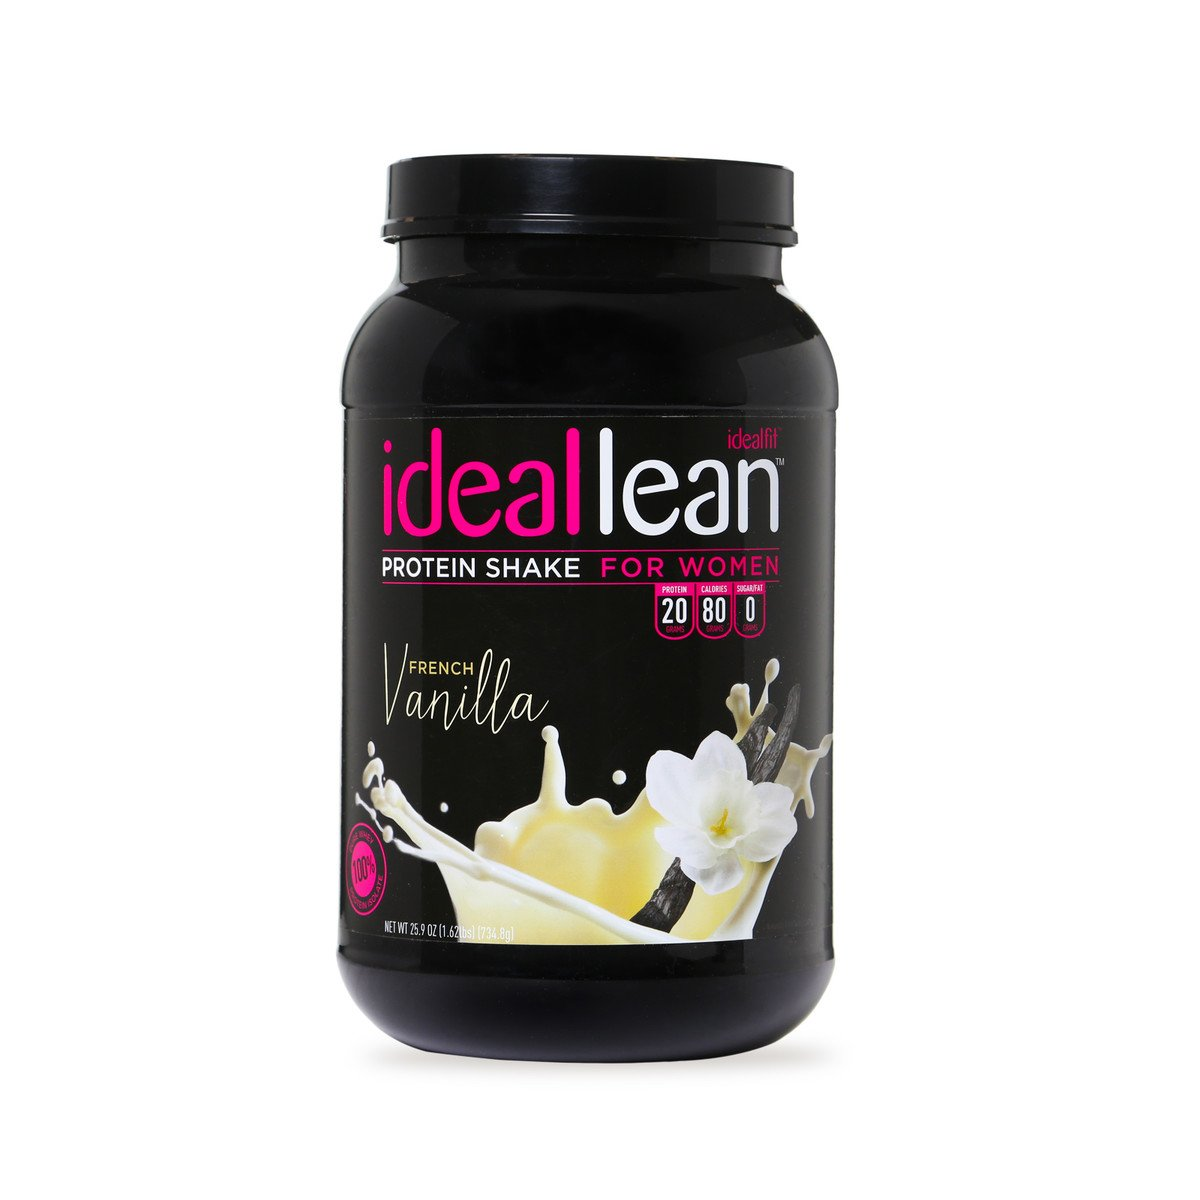 IdealLean - Nutritional Protein Powder For Women | 20g Whey Protein Isolate | Supports Weight Loss | Healthy Low Carb Shakes with Folic Acid & Vitamin D | 30 Servings (French Vanilla) by IdealFit